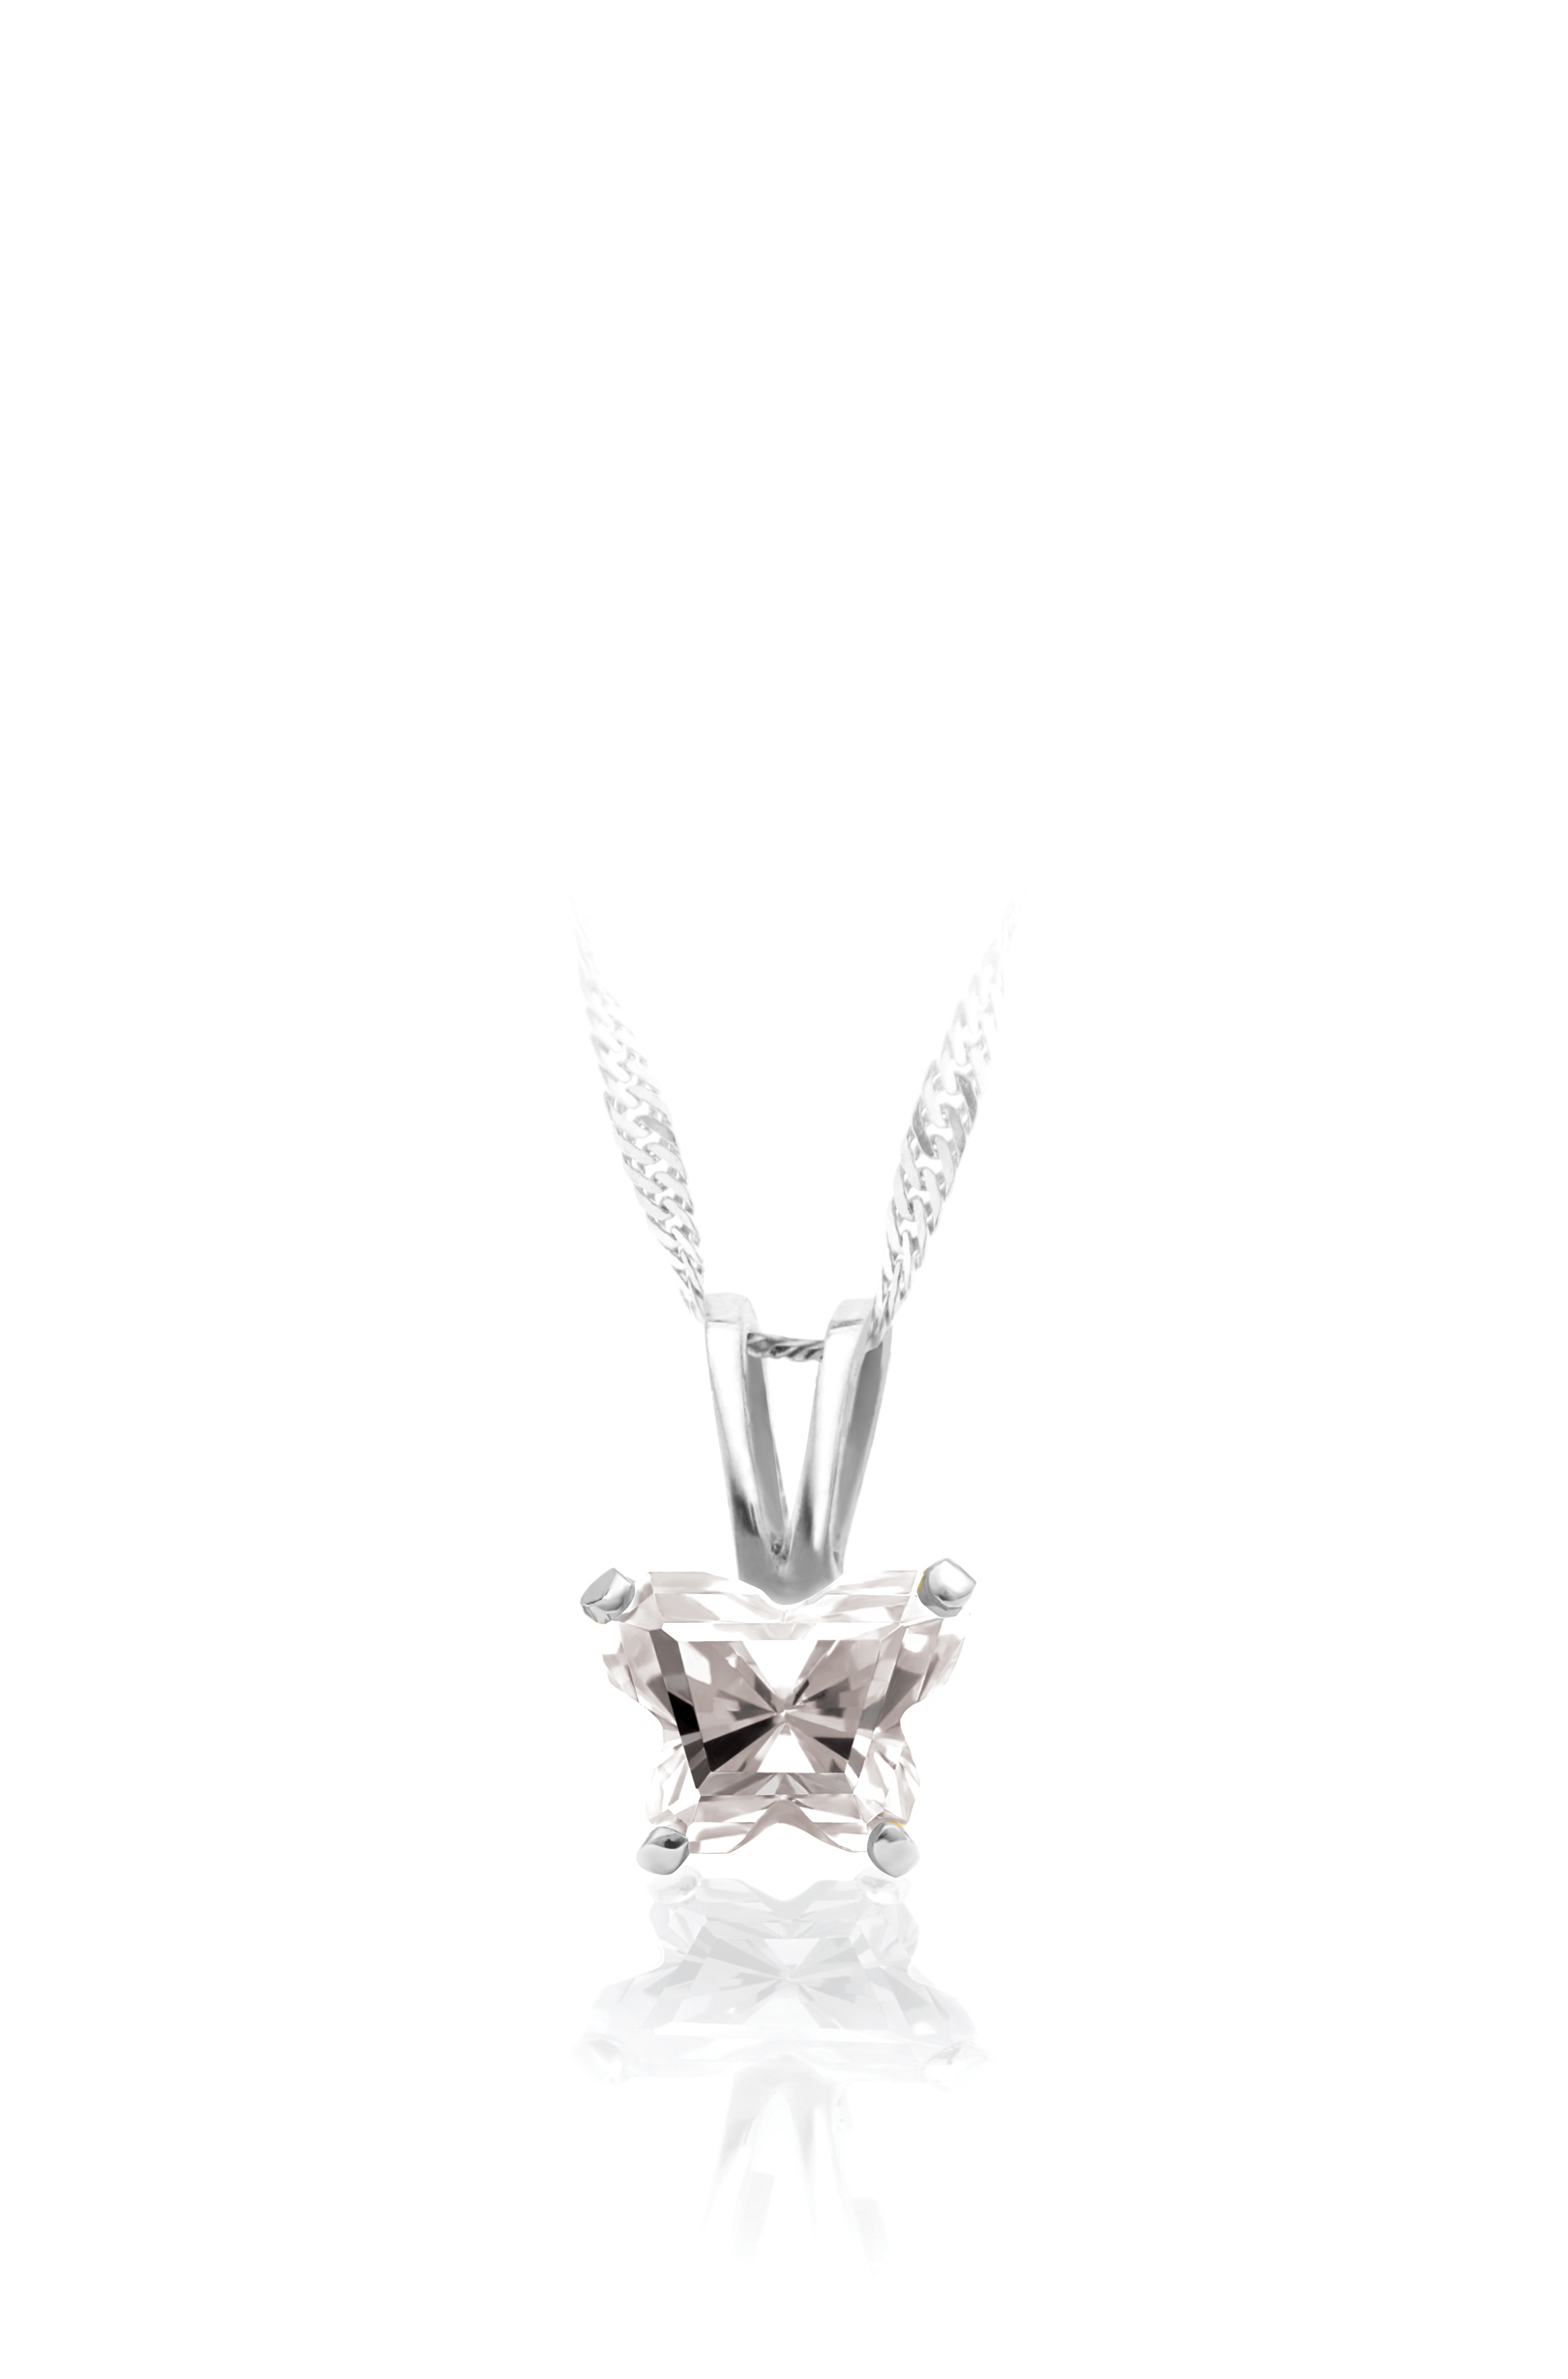 pendant for babies in sterling silver with cubic zirconia (month of April) - Chain included